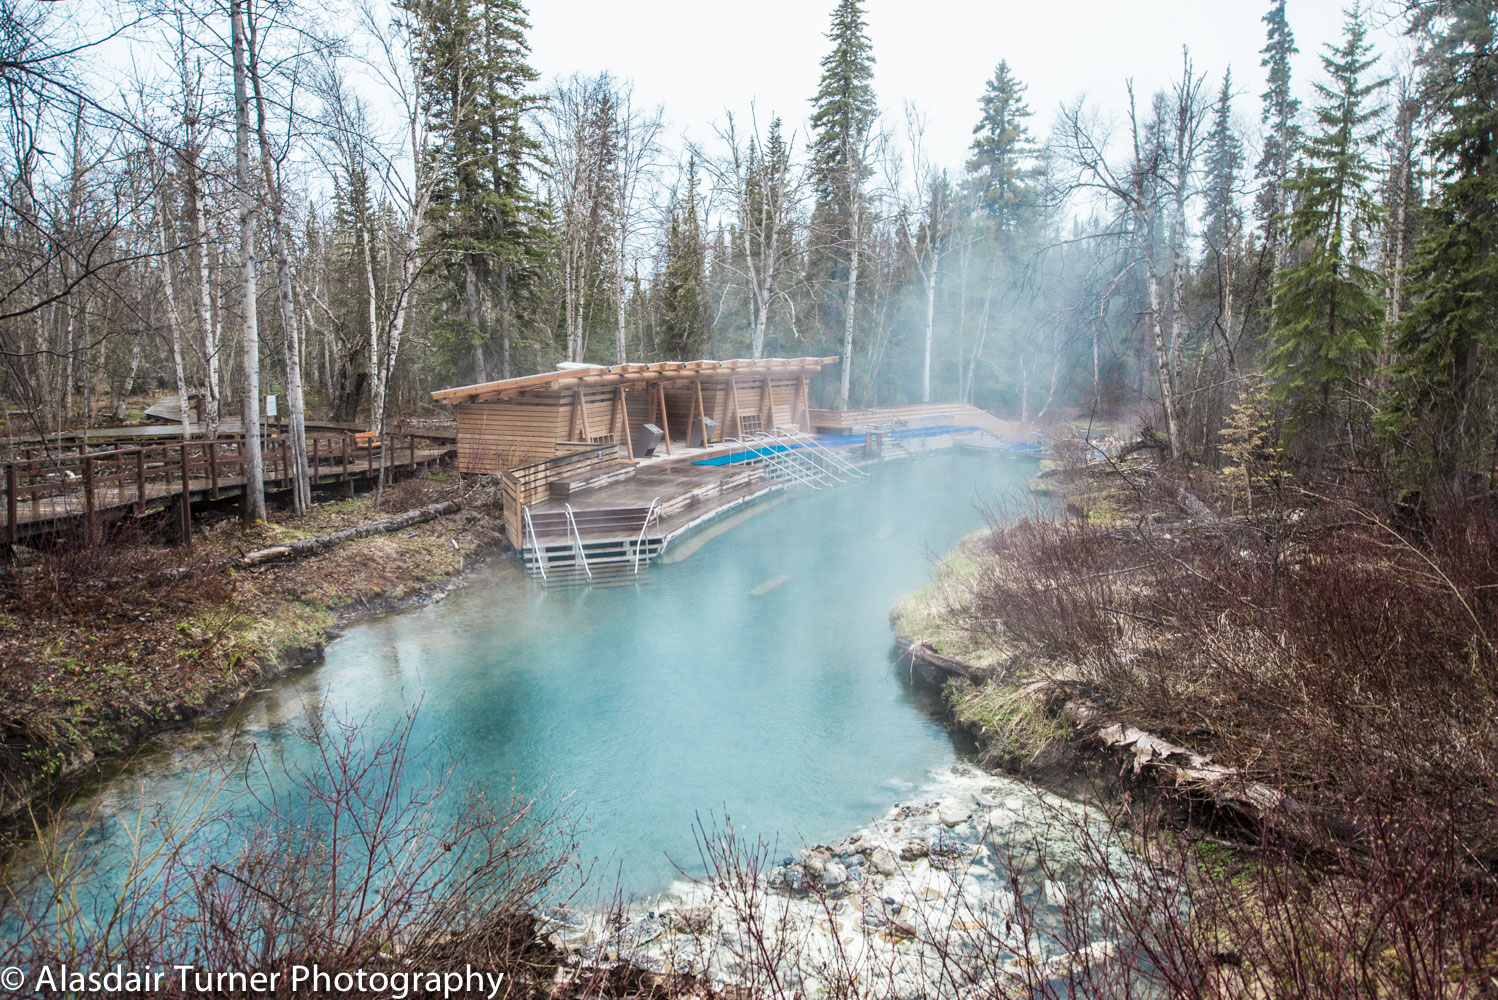 Laird Hot Springs in Northern BC. A must visit for anyone driving the highway.